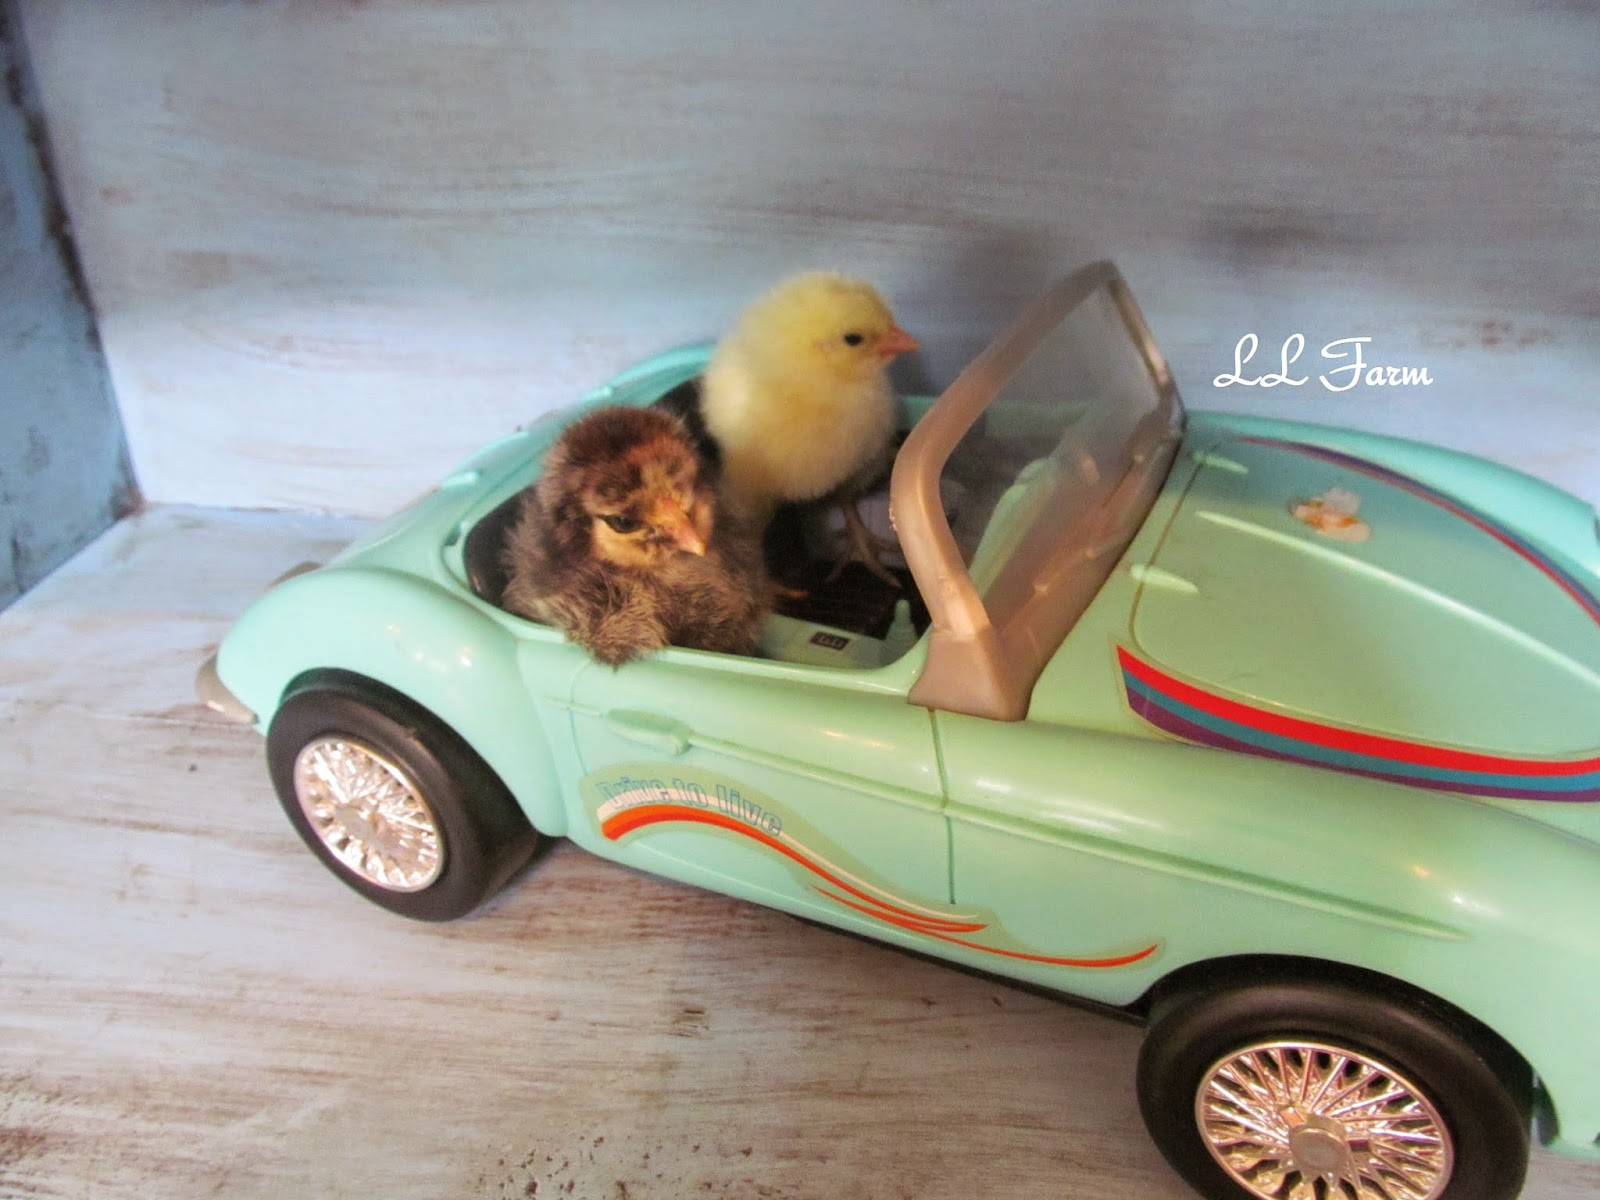 Baby Chick Photo Shoot by LL Farm at Treasure Hunt Thursday From My Front Porch To Yours.